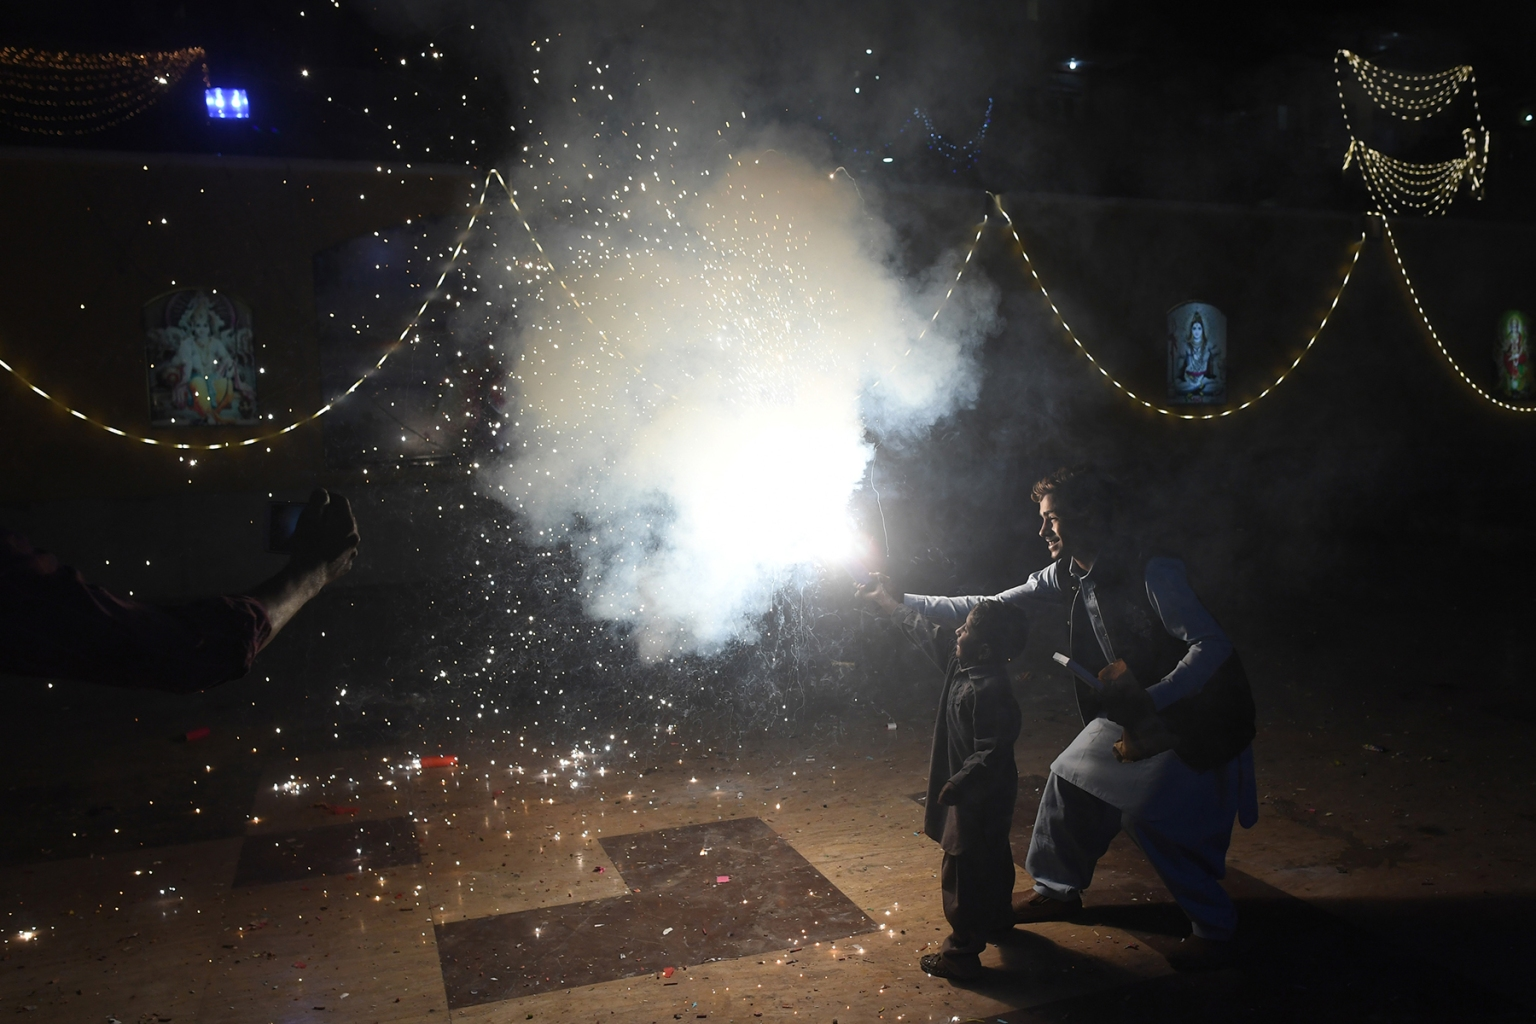 A Pakistani Hindu lights firecrackers during Diwali Festival celebrations in Karachi on Nov. 7. ASIF HASSAN/AFP/Getty Images